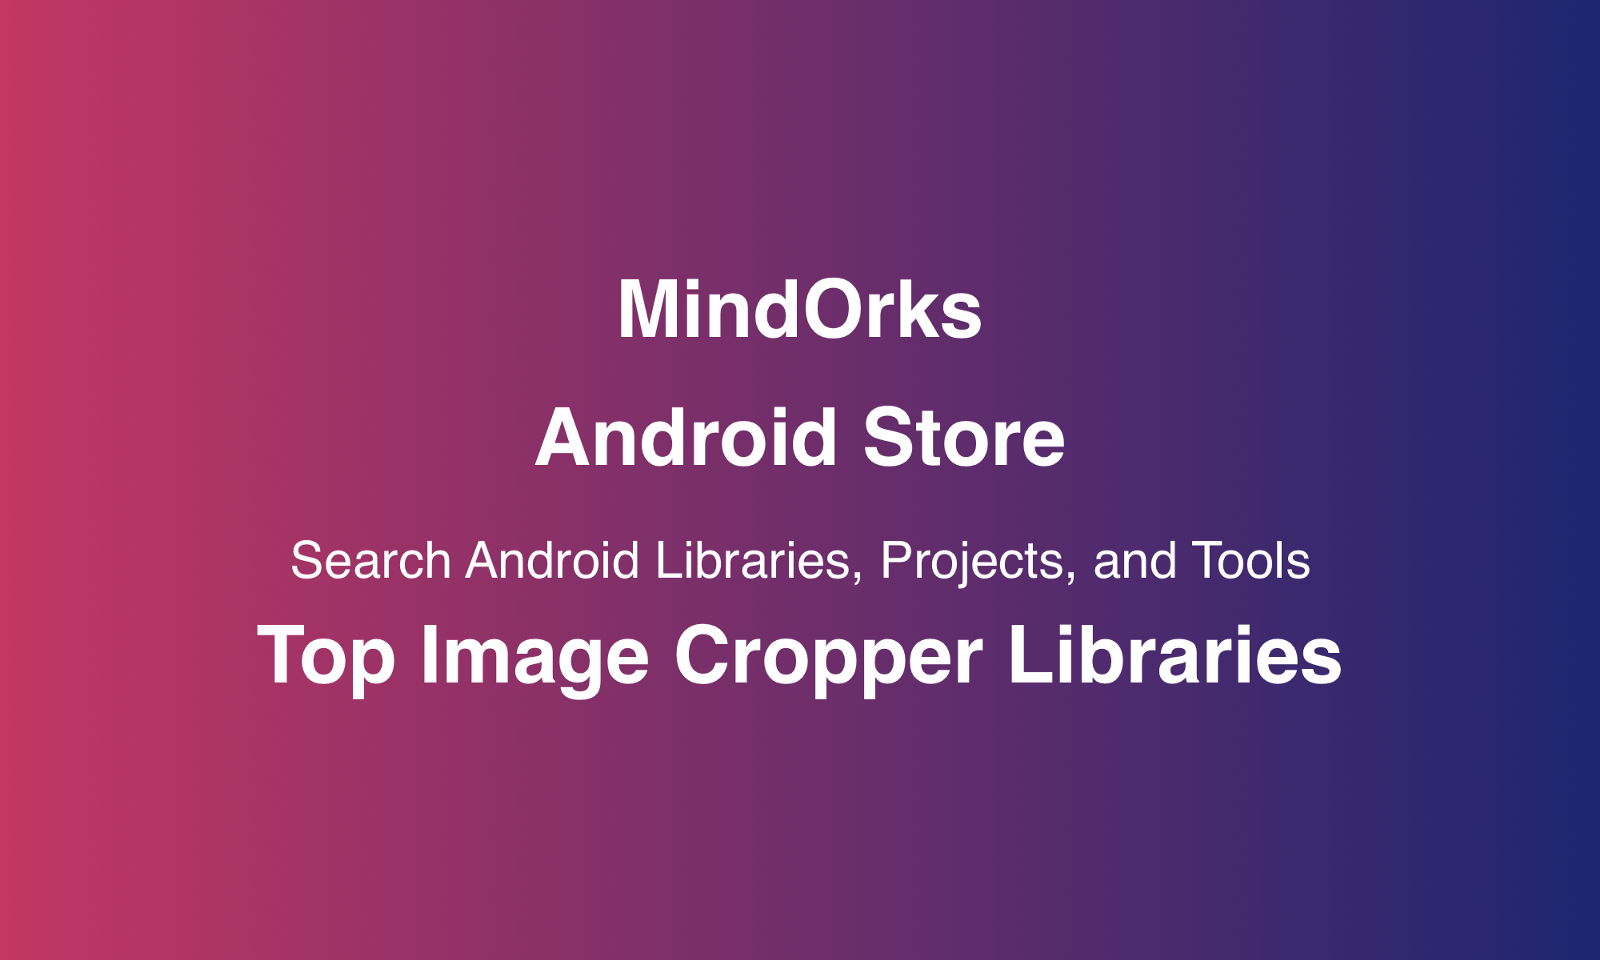 Android Top Image Cropper Libraries